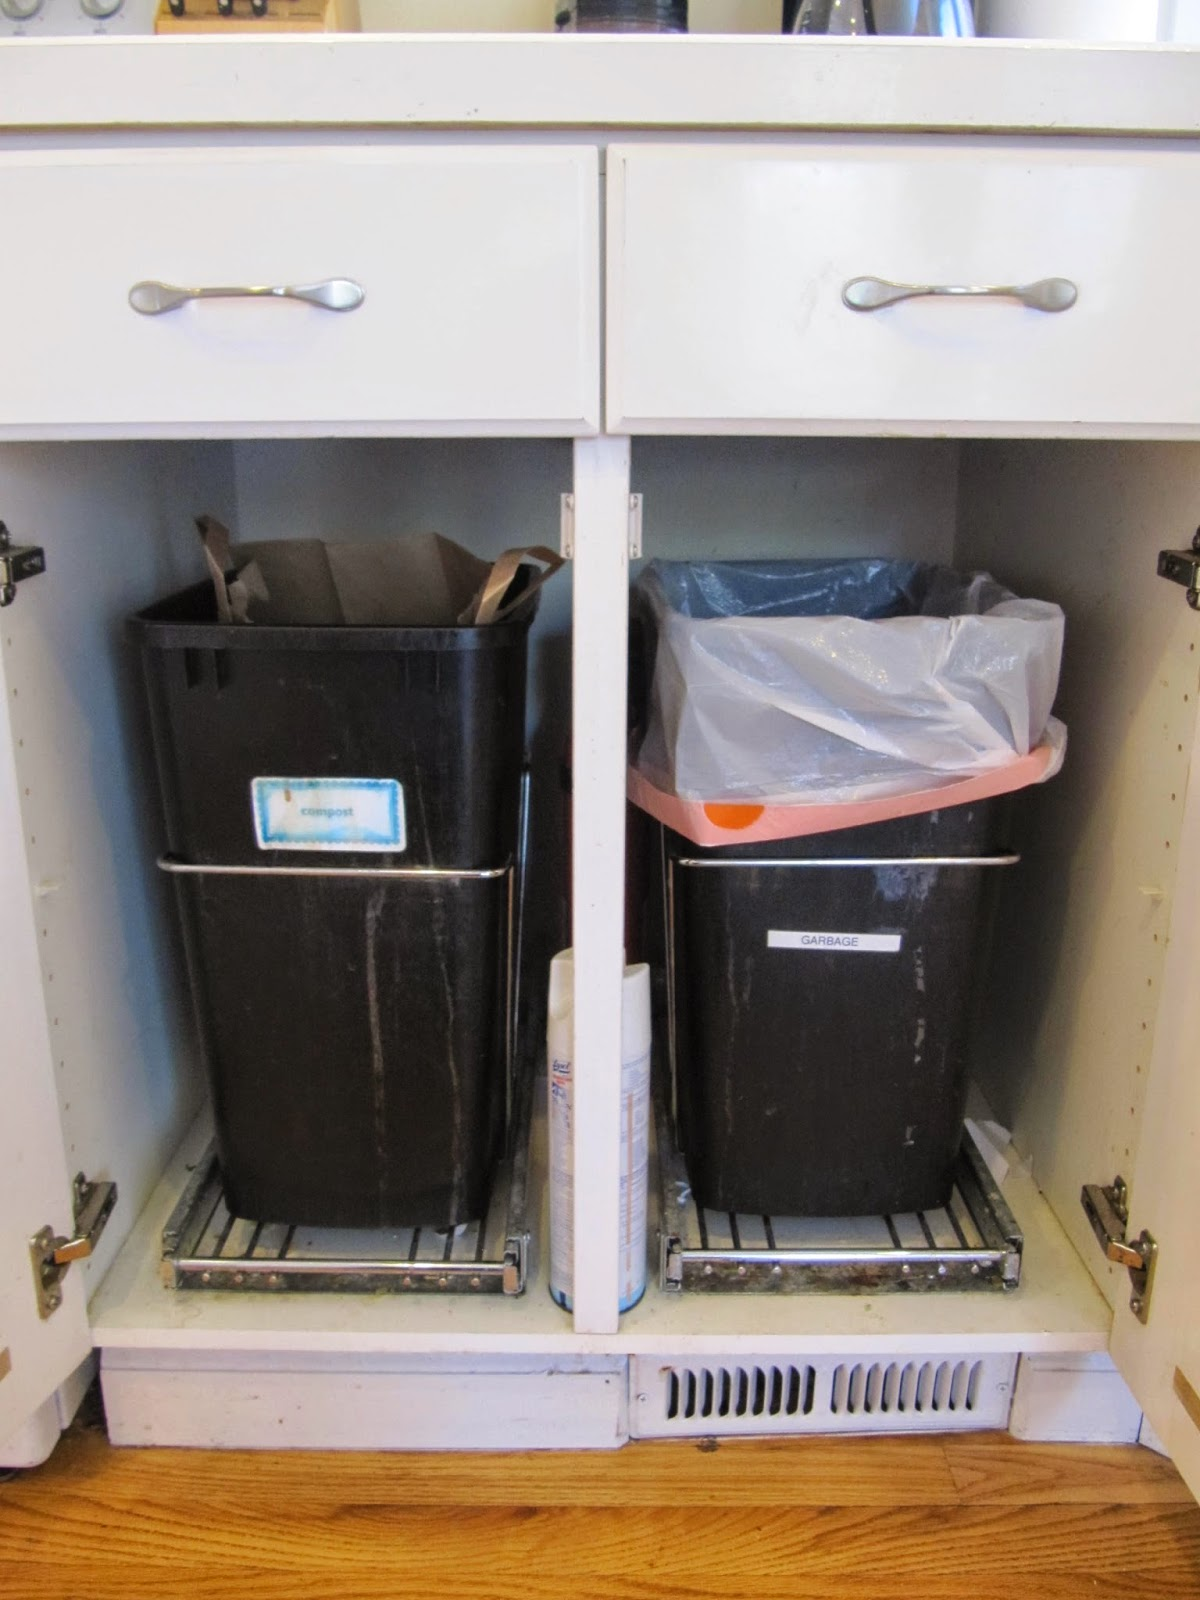 We Use The Cupboard Under Our Sink For Storing Dish Washing Supplies And Housing A Large Laundry Basket To Collect Recycling